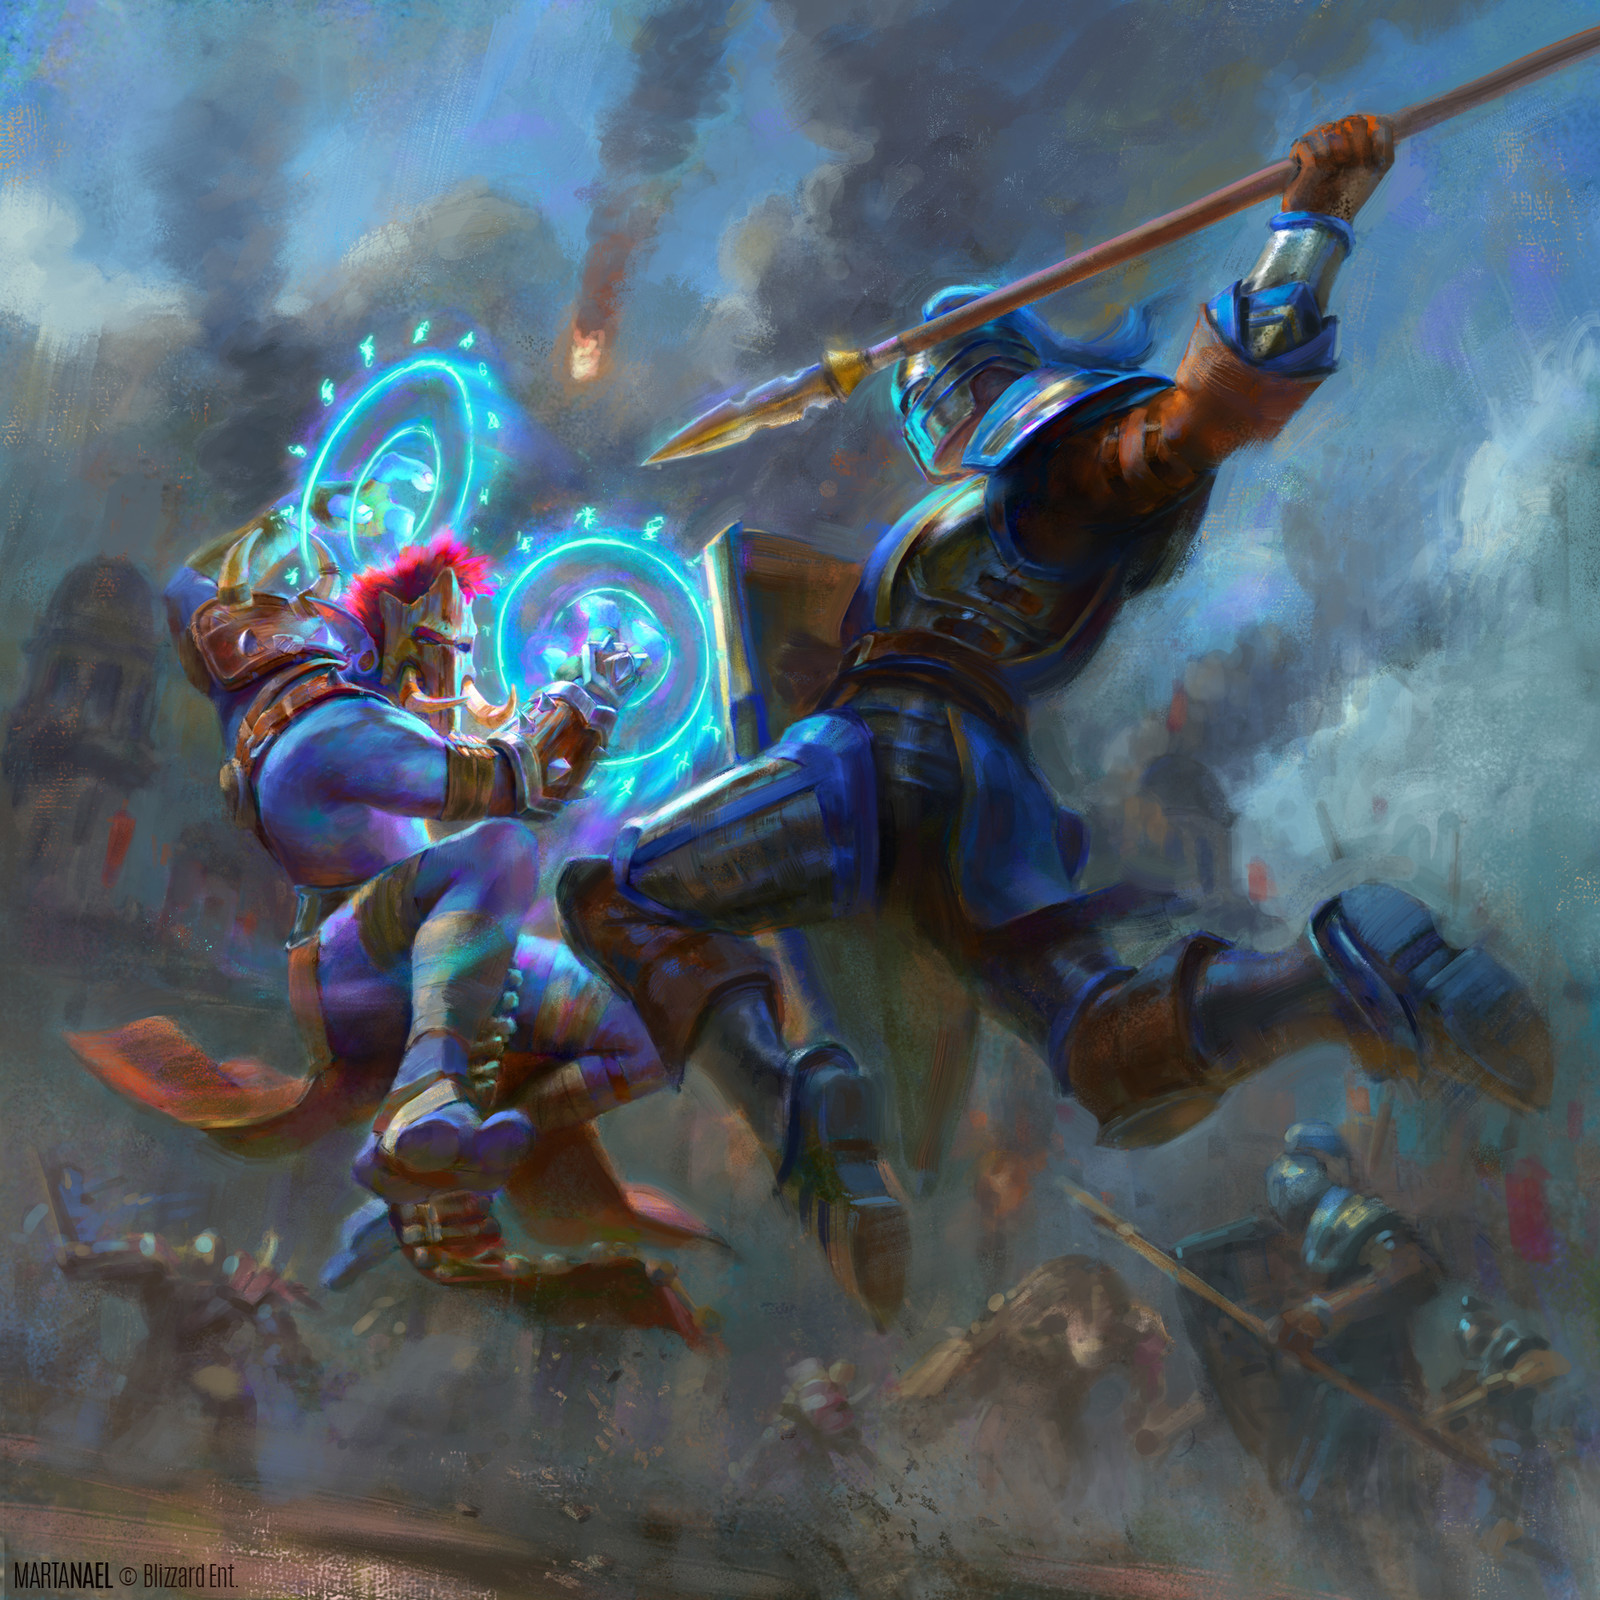 Troll vs Footman warrior - Battle for Azeroth promo art